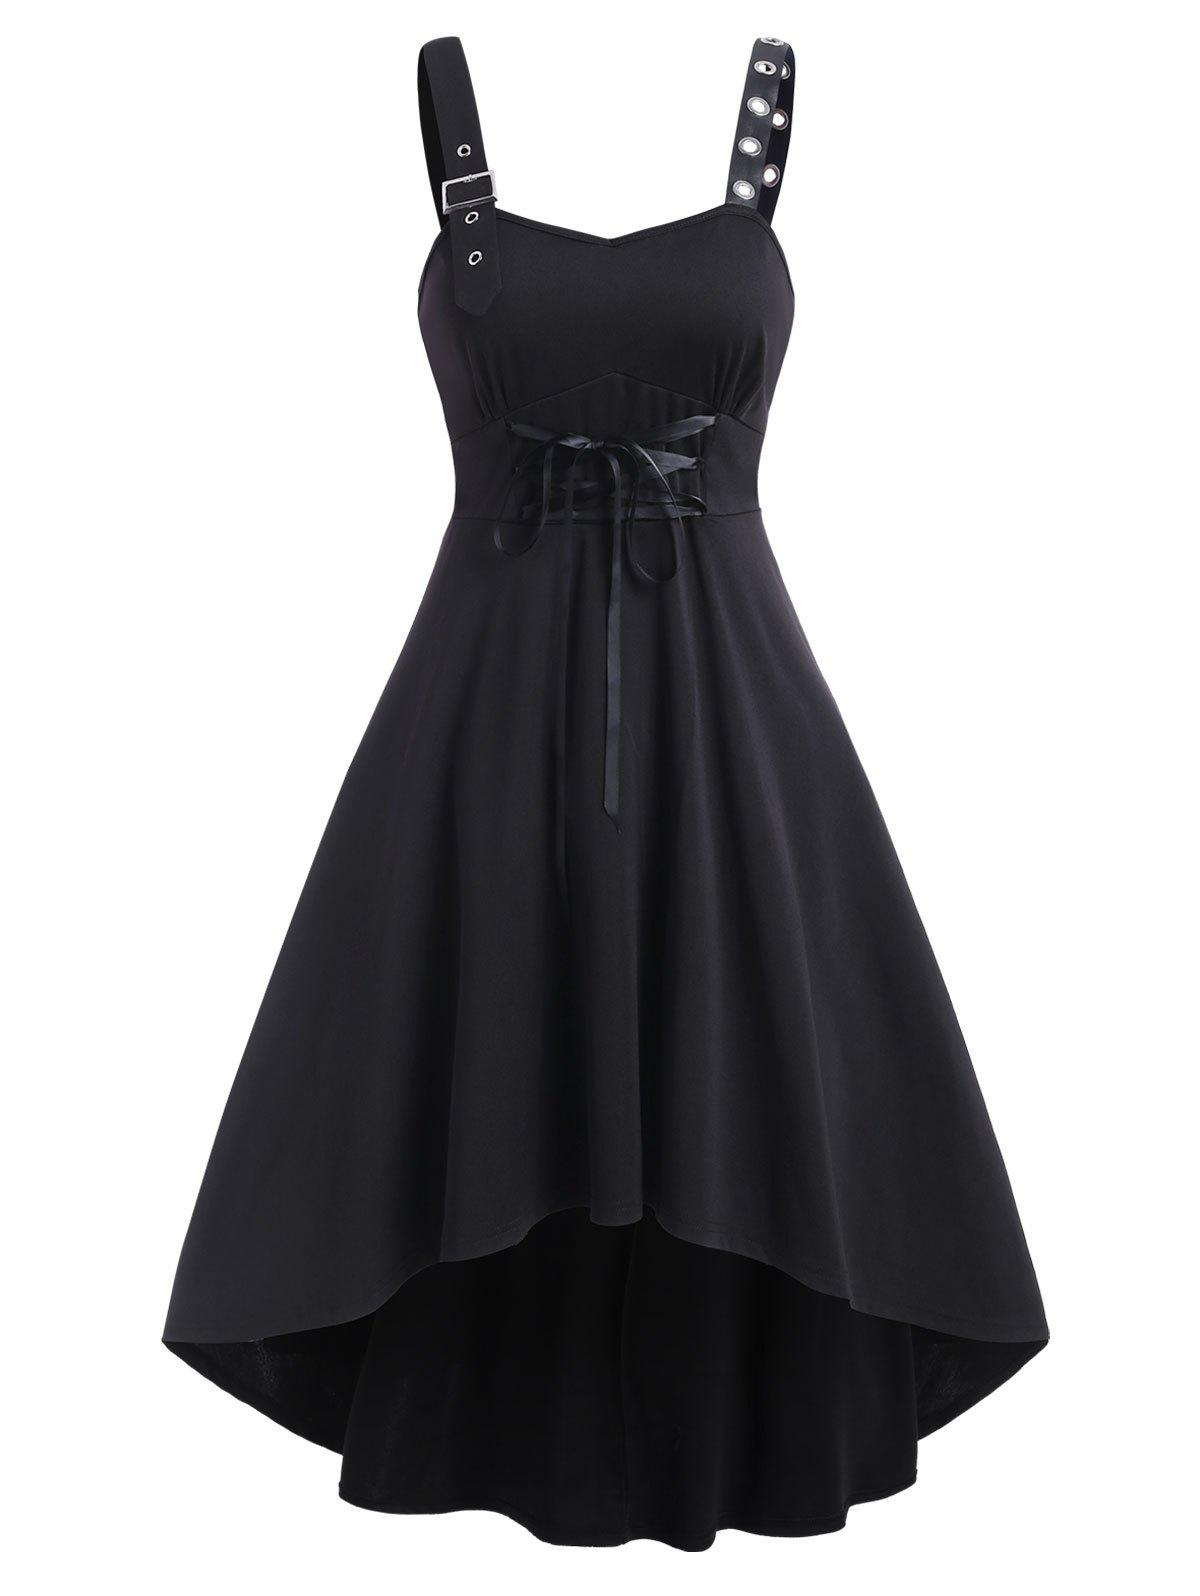 Sleeveless Lace-up Buckle Strap High Low Gothic Dress - BLACK M